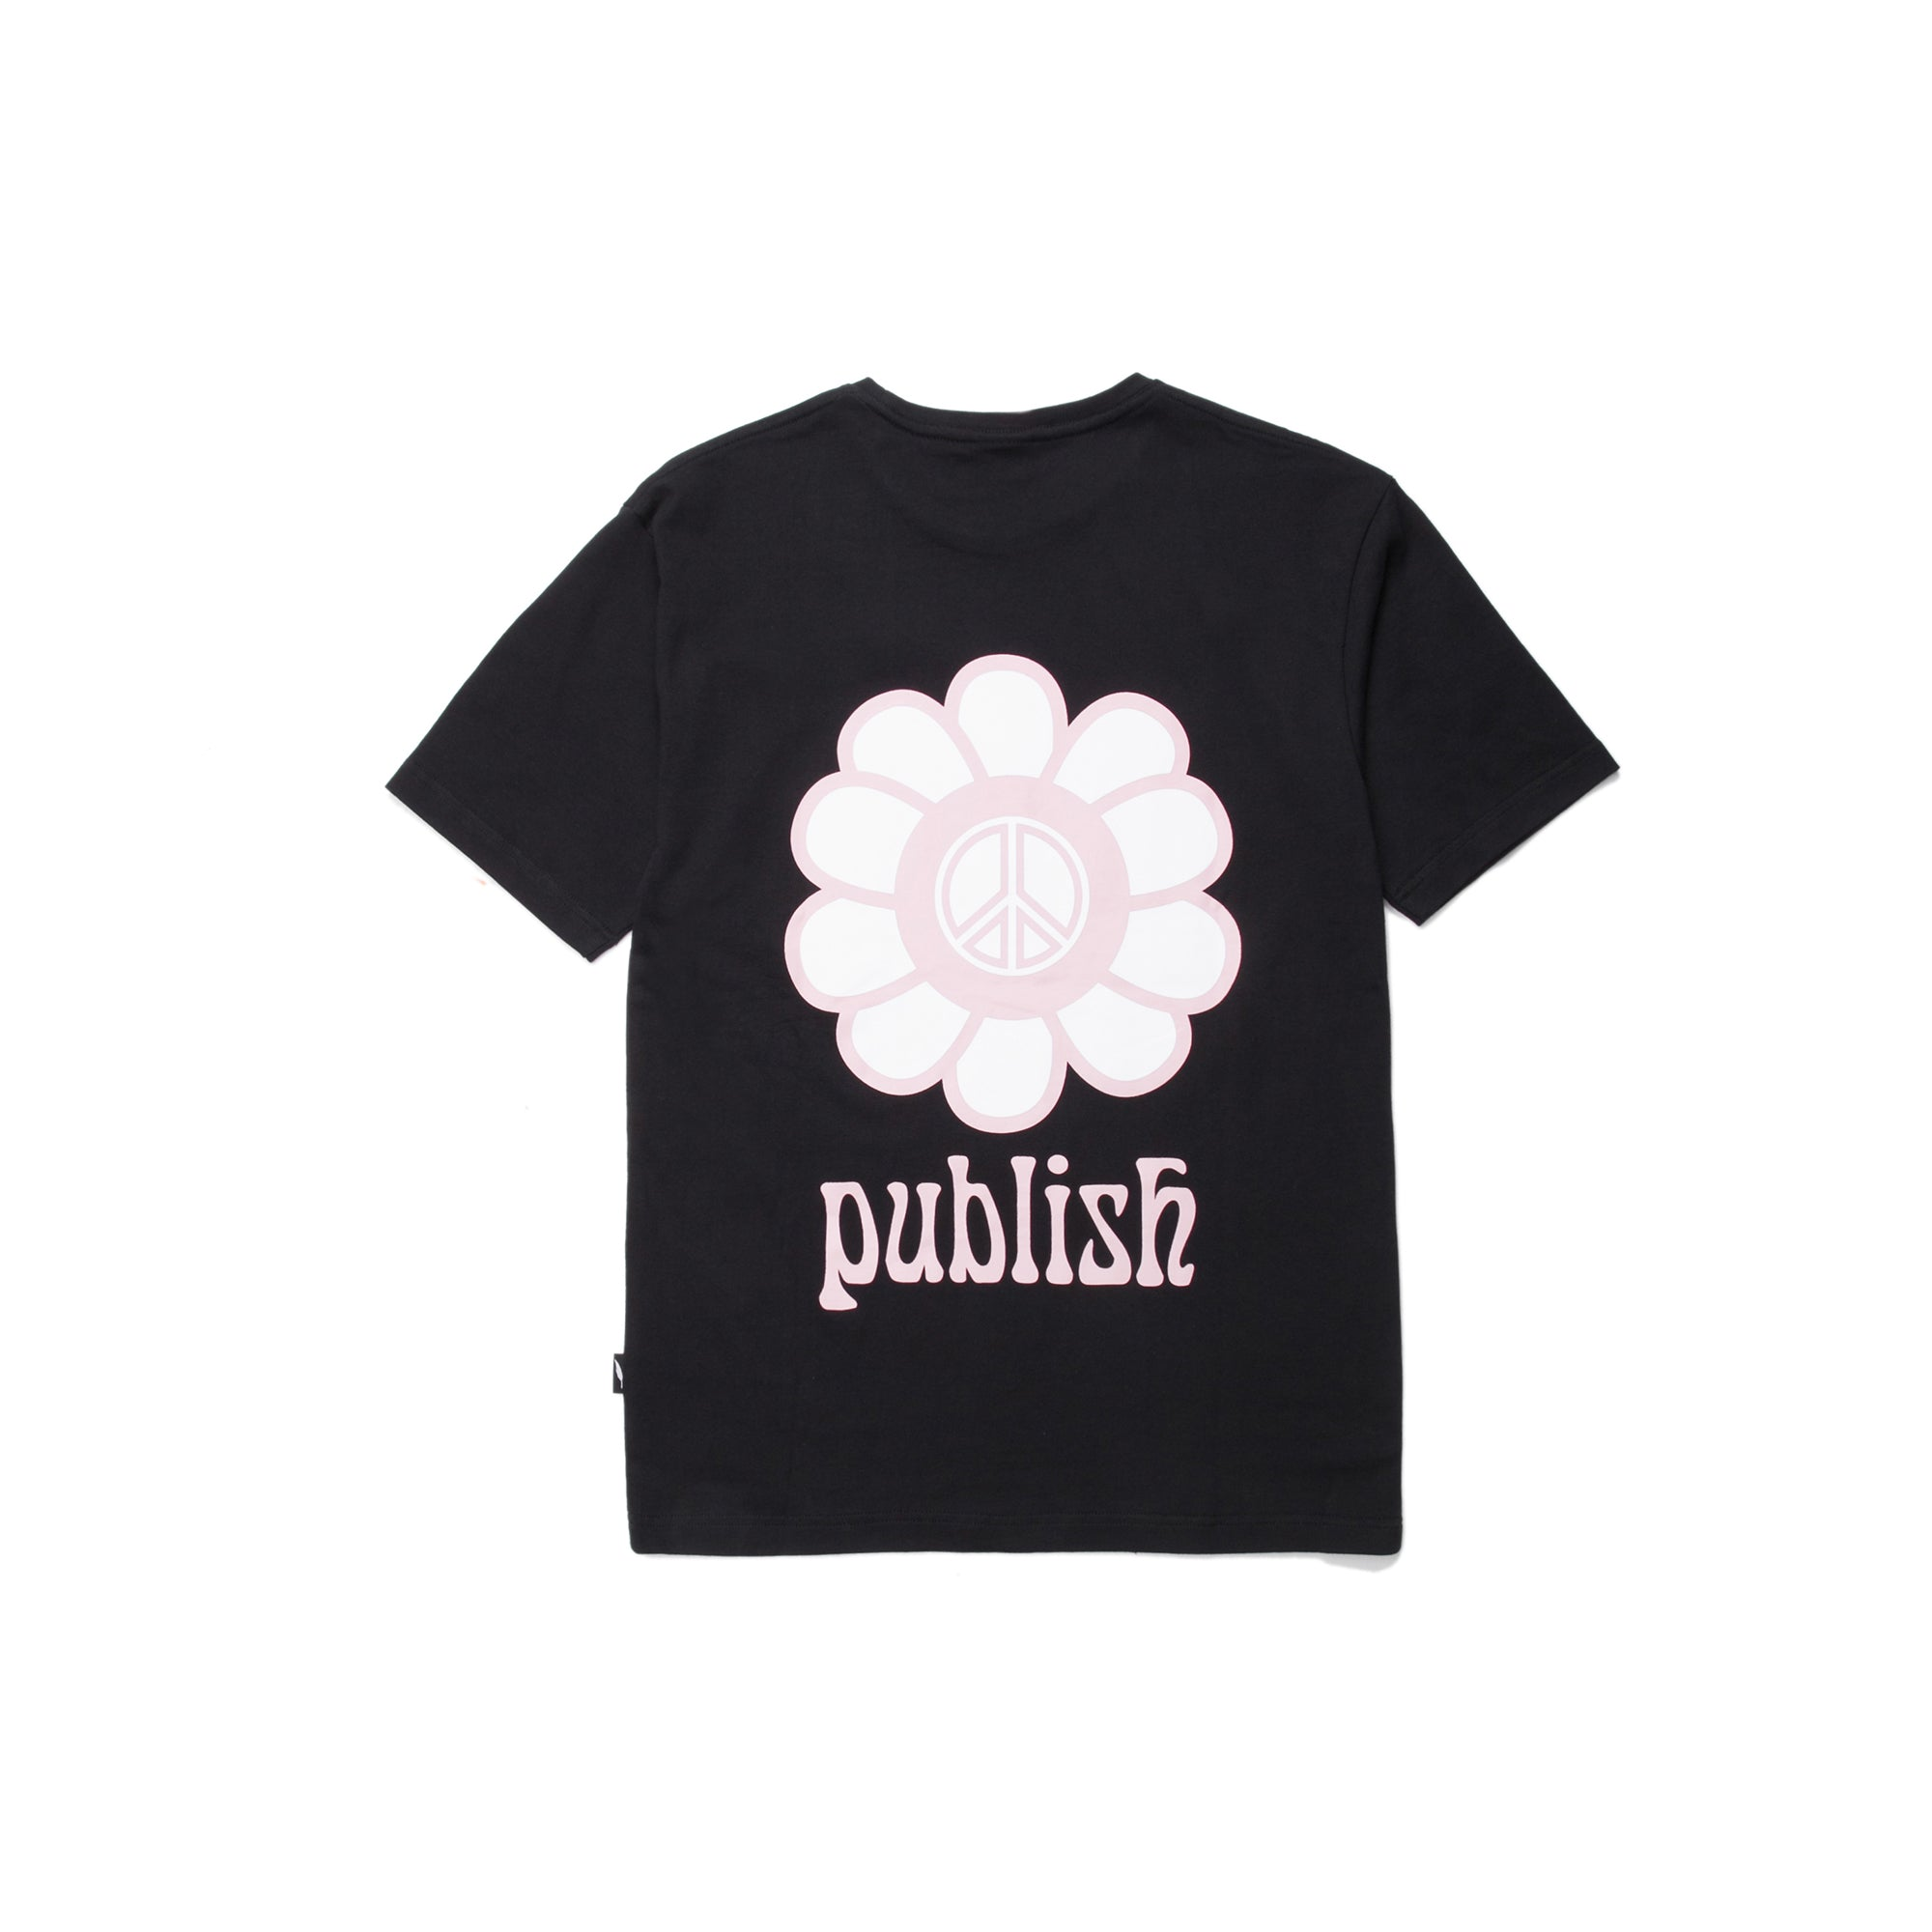 Publish Peace - Black